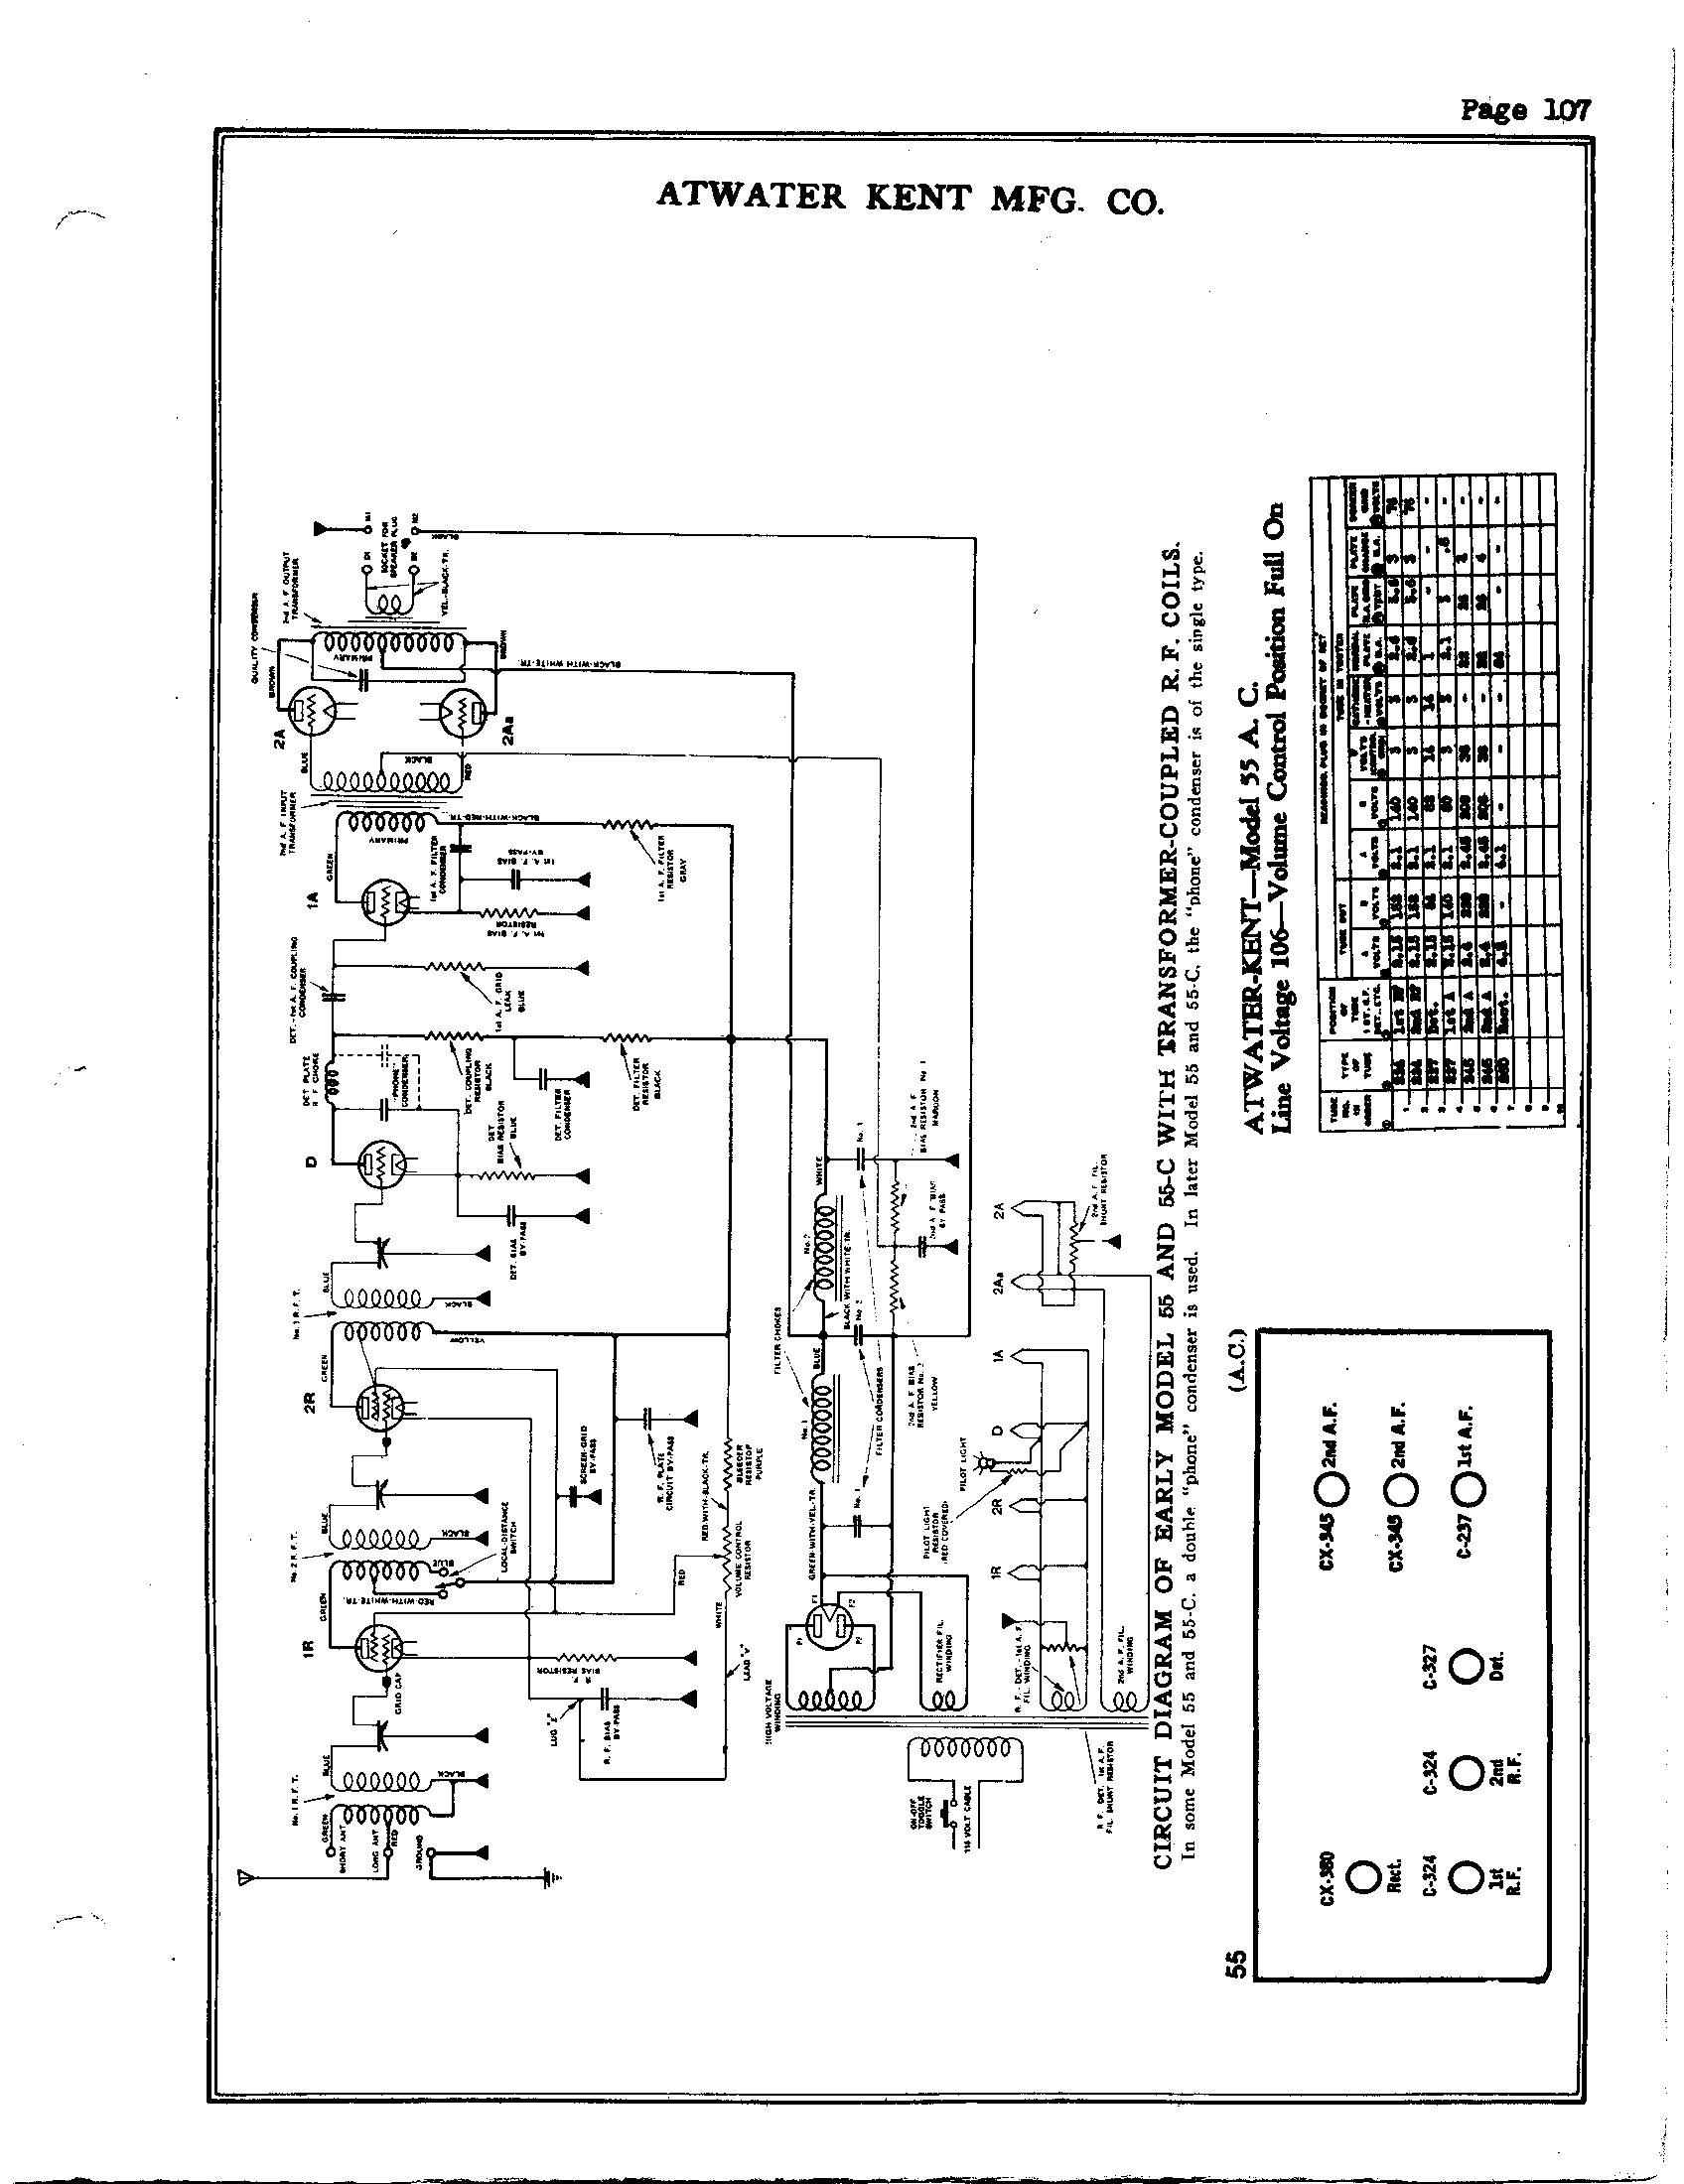 Chevy 4 3 Vacuum Diagram Chevy Wiring Diagram Images